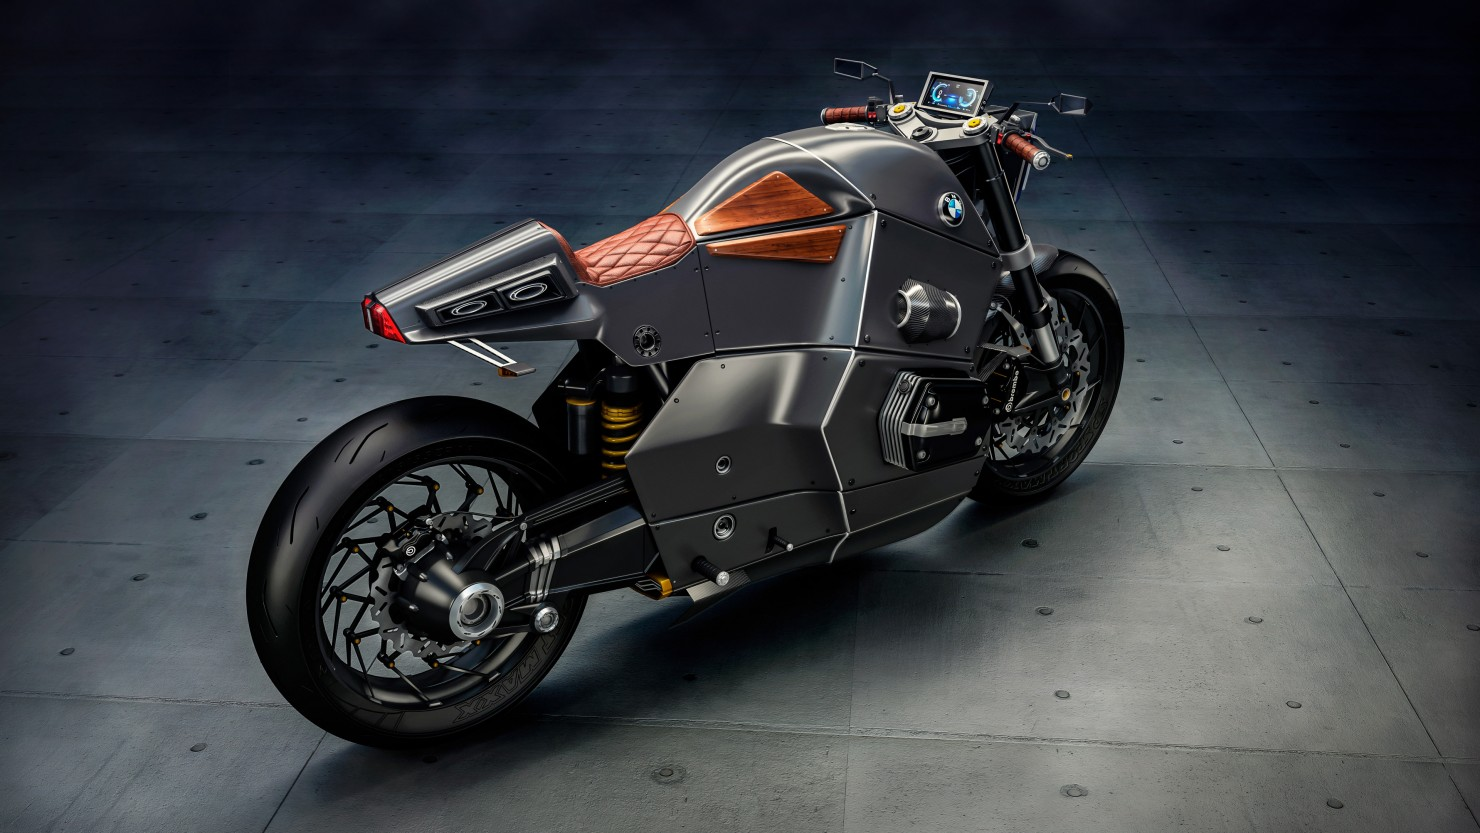 BMW Motorcycle Futuristic